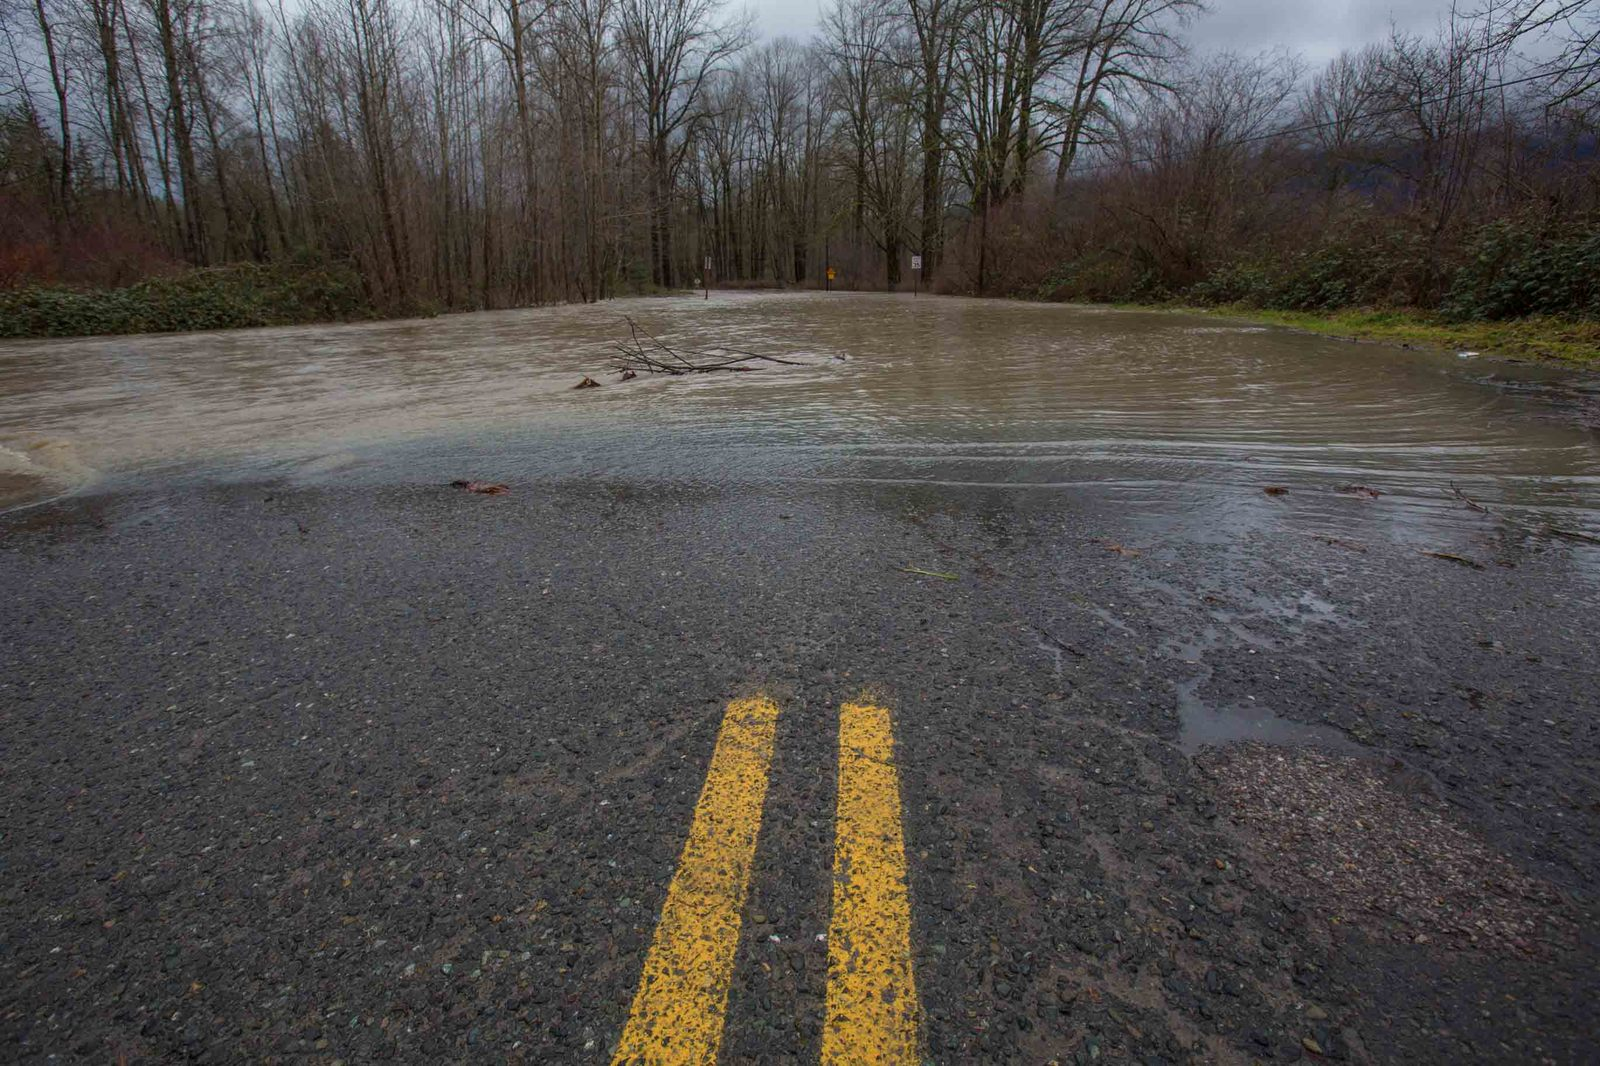 Snoqualmie valley flooding, January 2015. Photo by The Nature Conservancy.